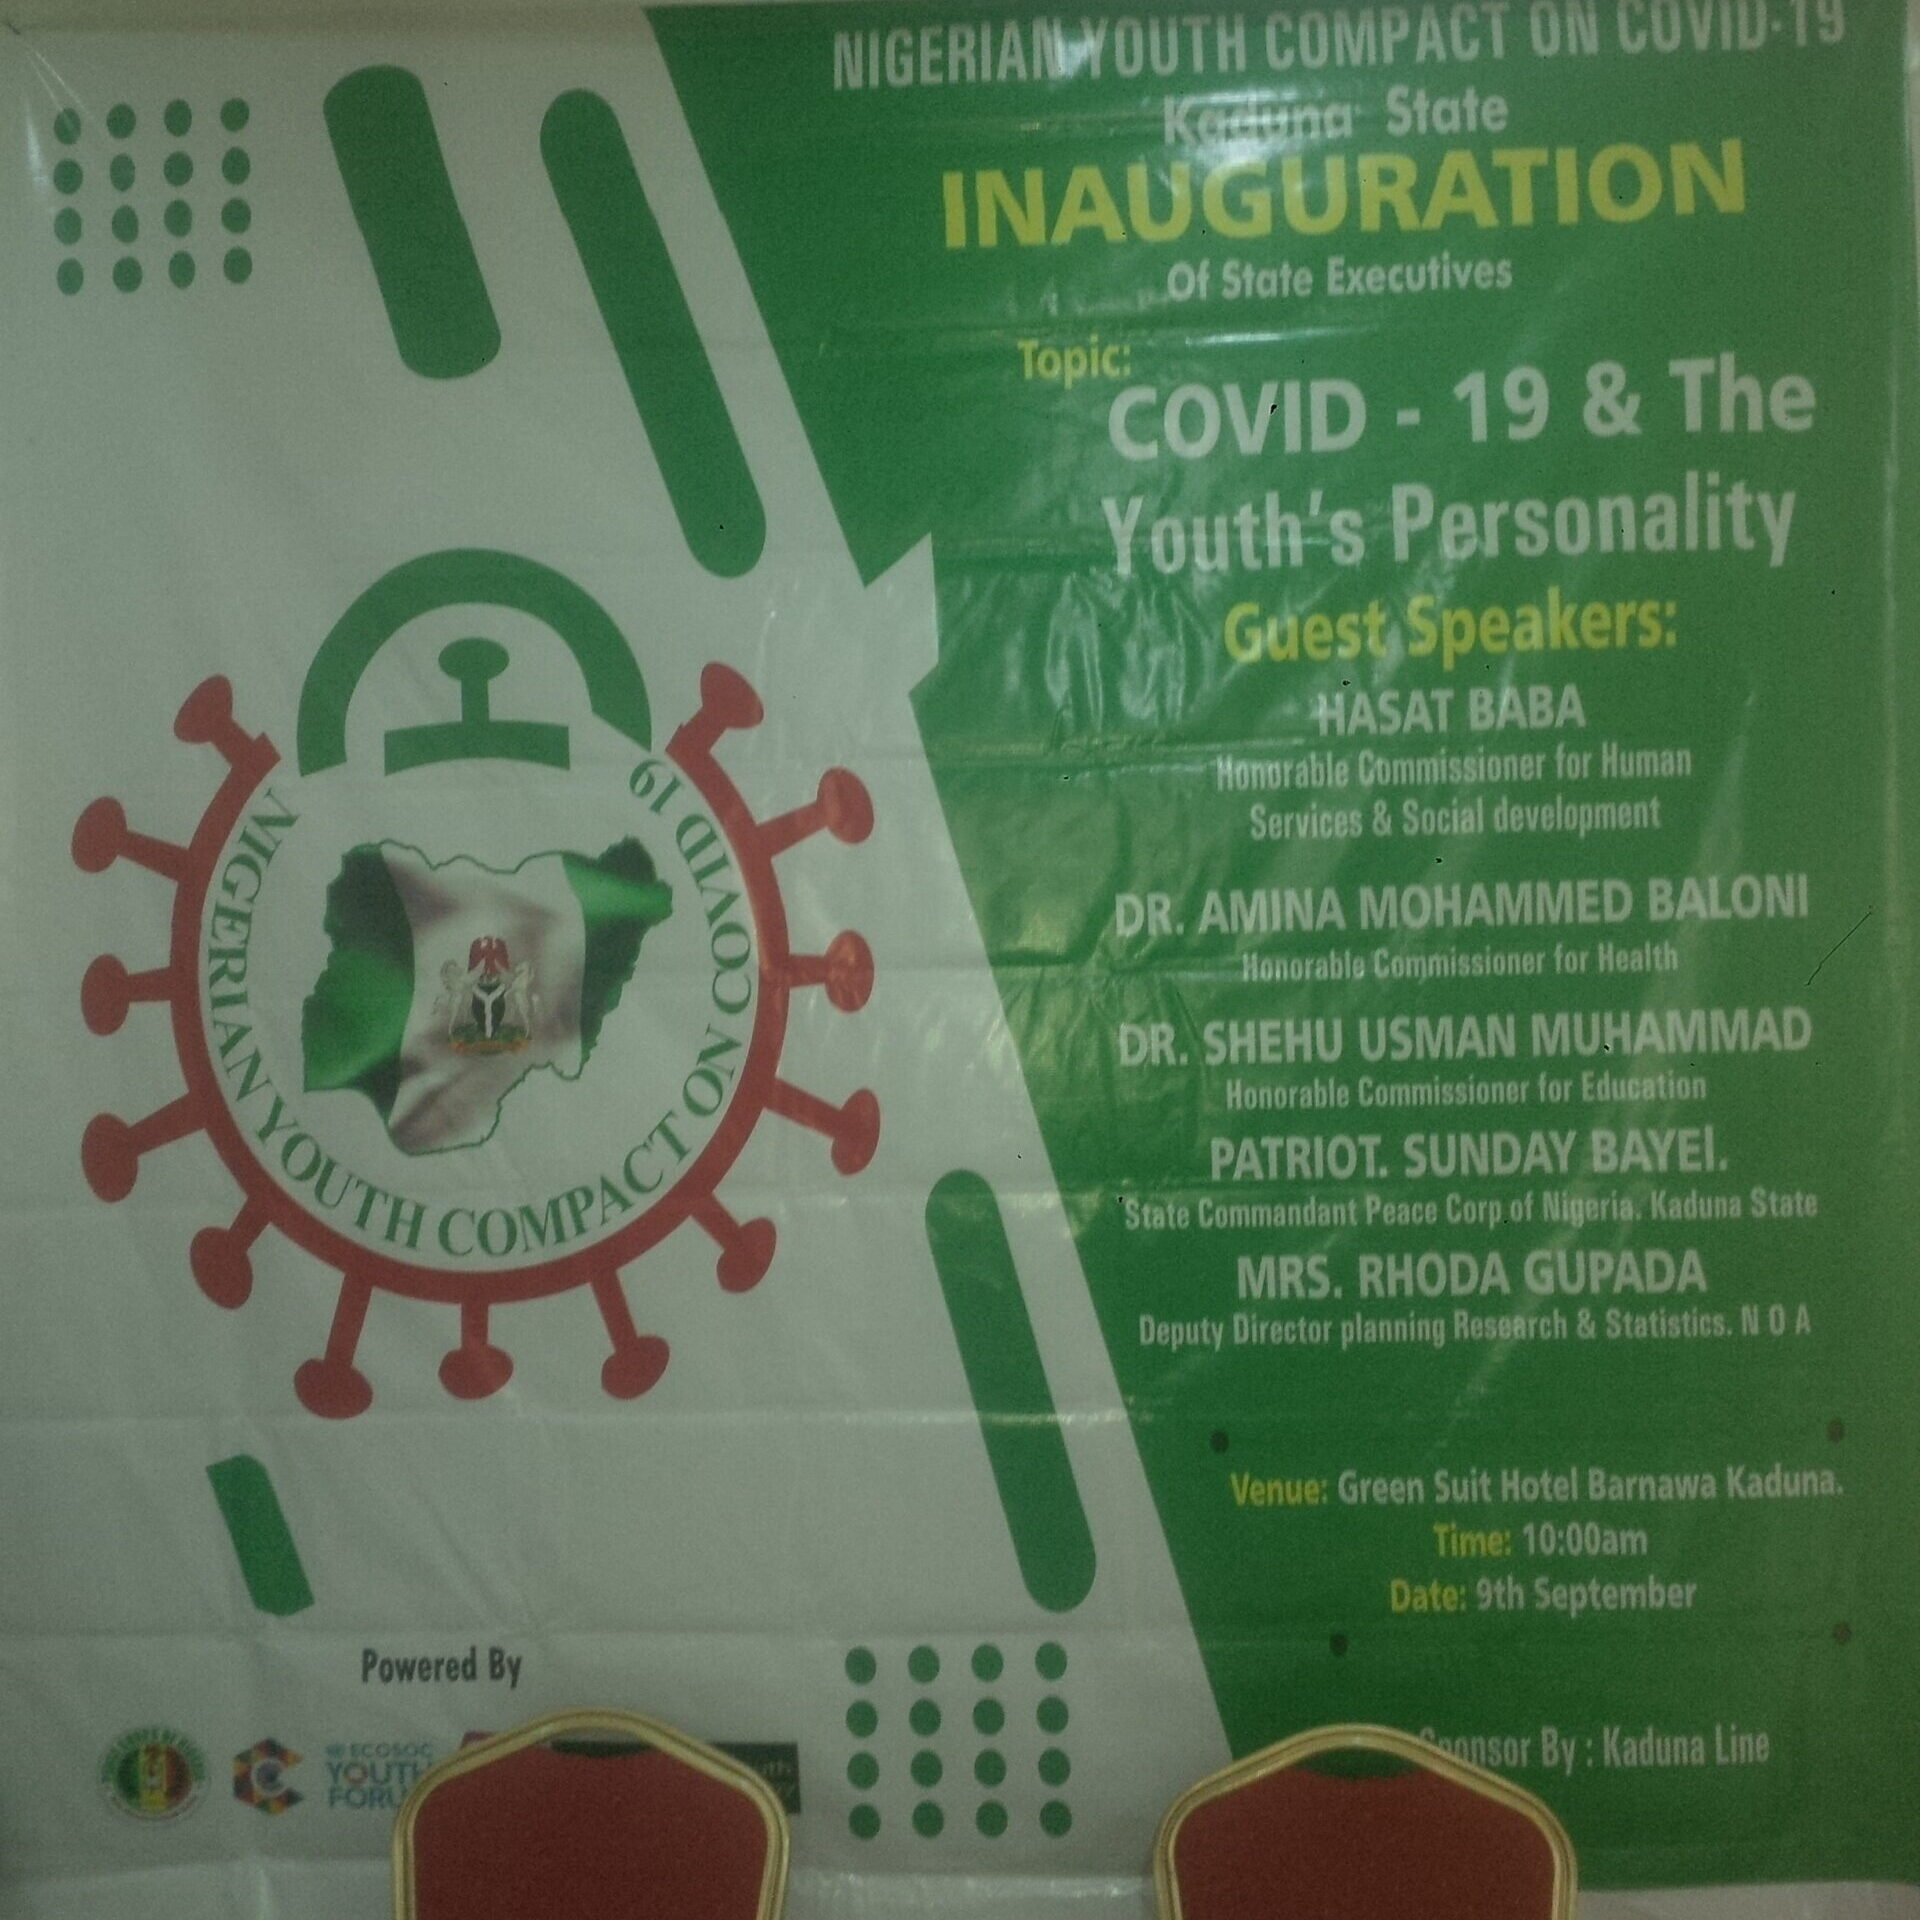 IMG 20200909 100342 0f9e14fd9f315d66f40d32db03574653 scaled e1599940196525 - COVID-19: Group inaugurates Chapter Executive in Kaduna, promises to impact 10 million youths